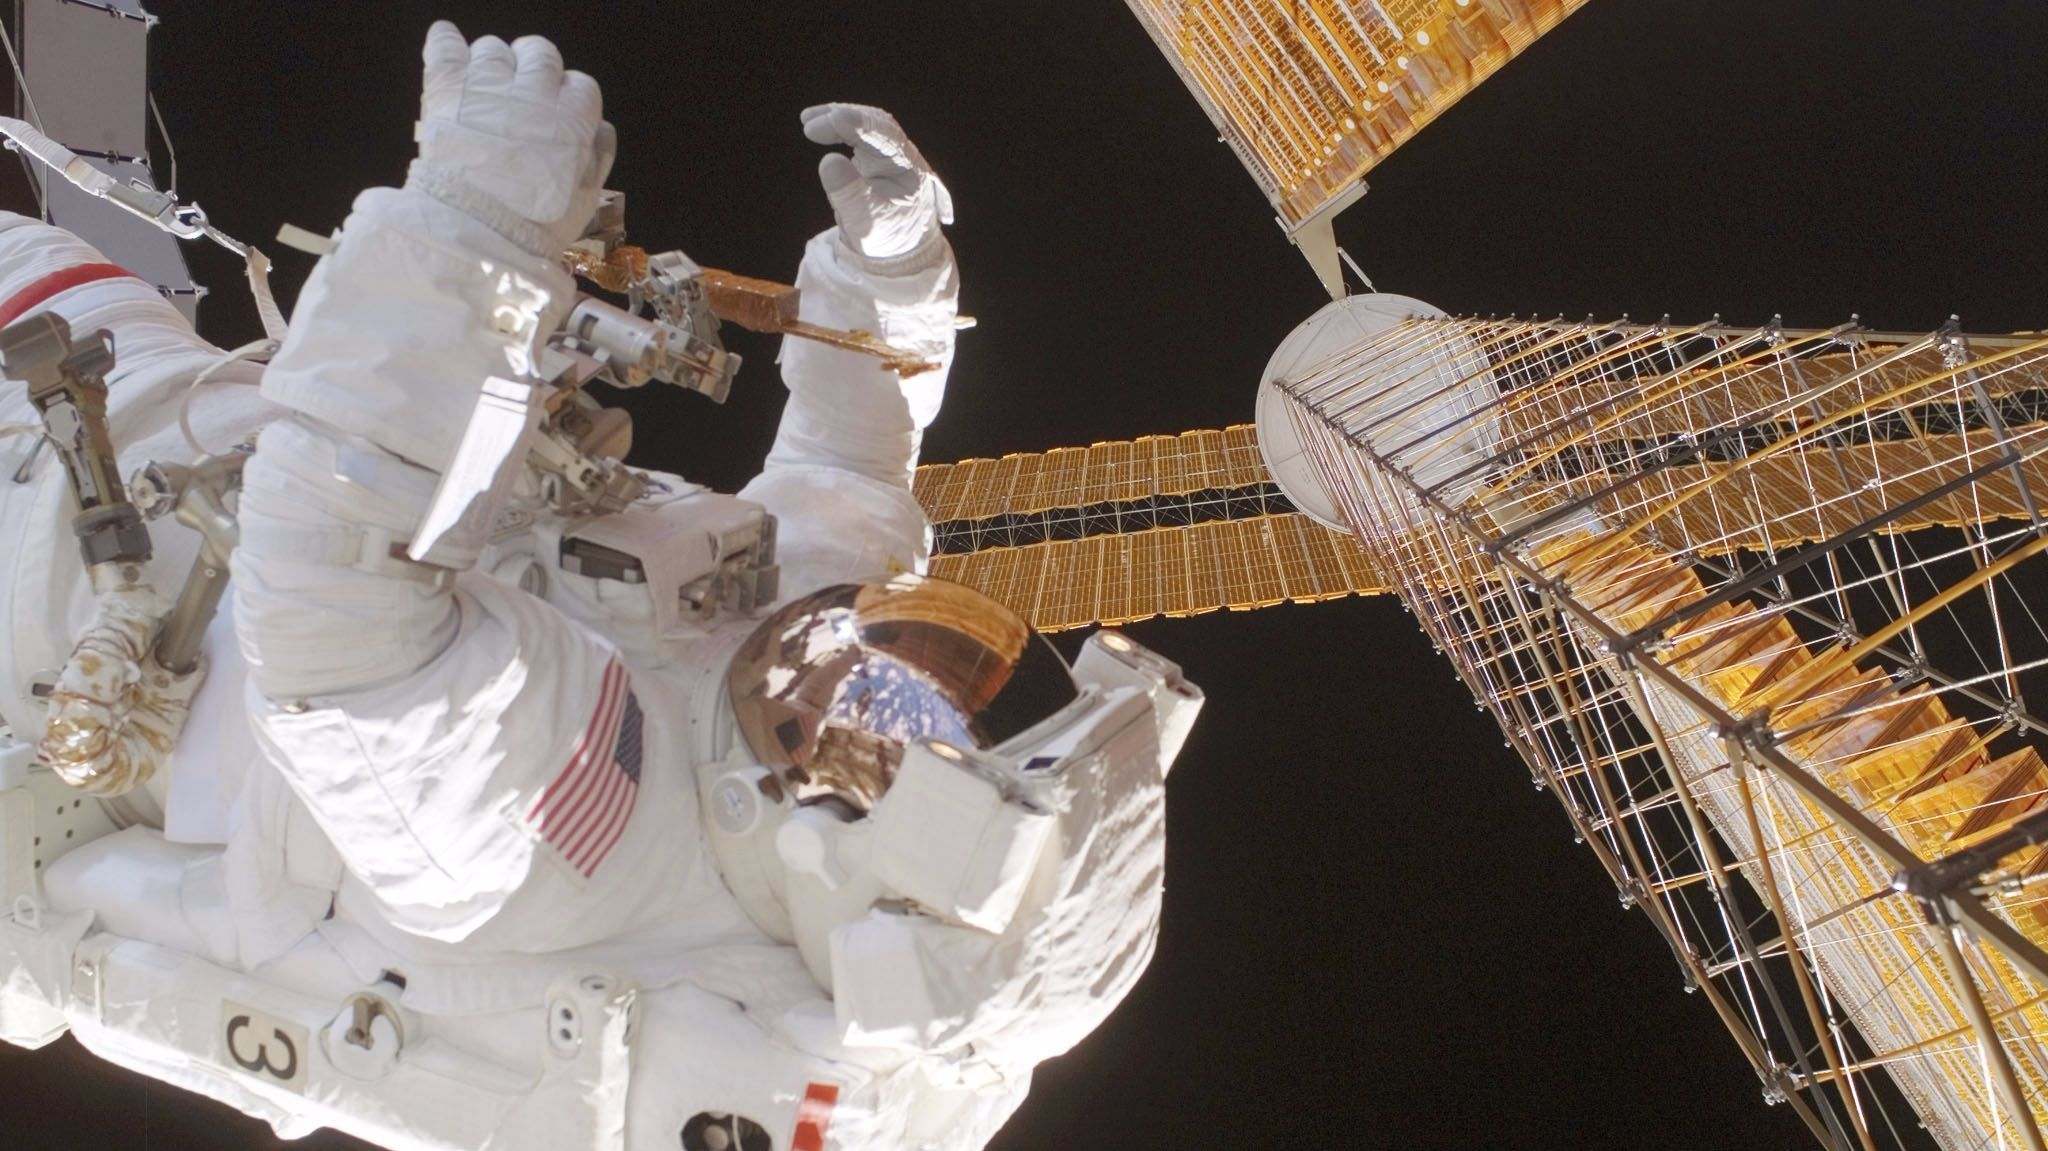 space shuttle mission specialist - photo #8